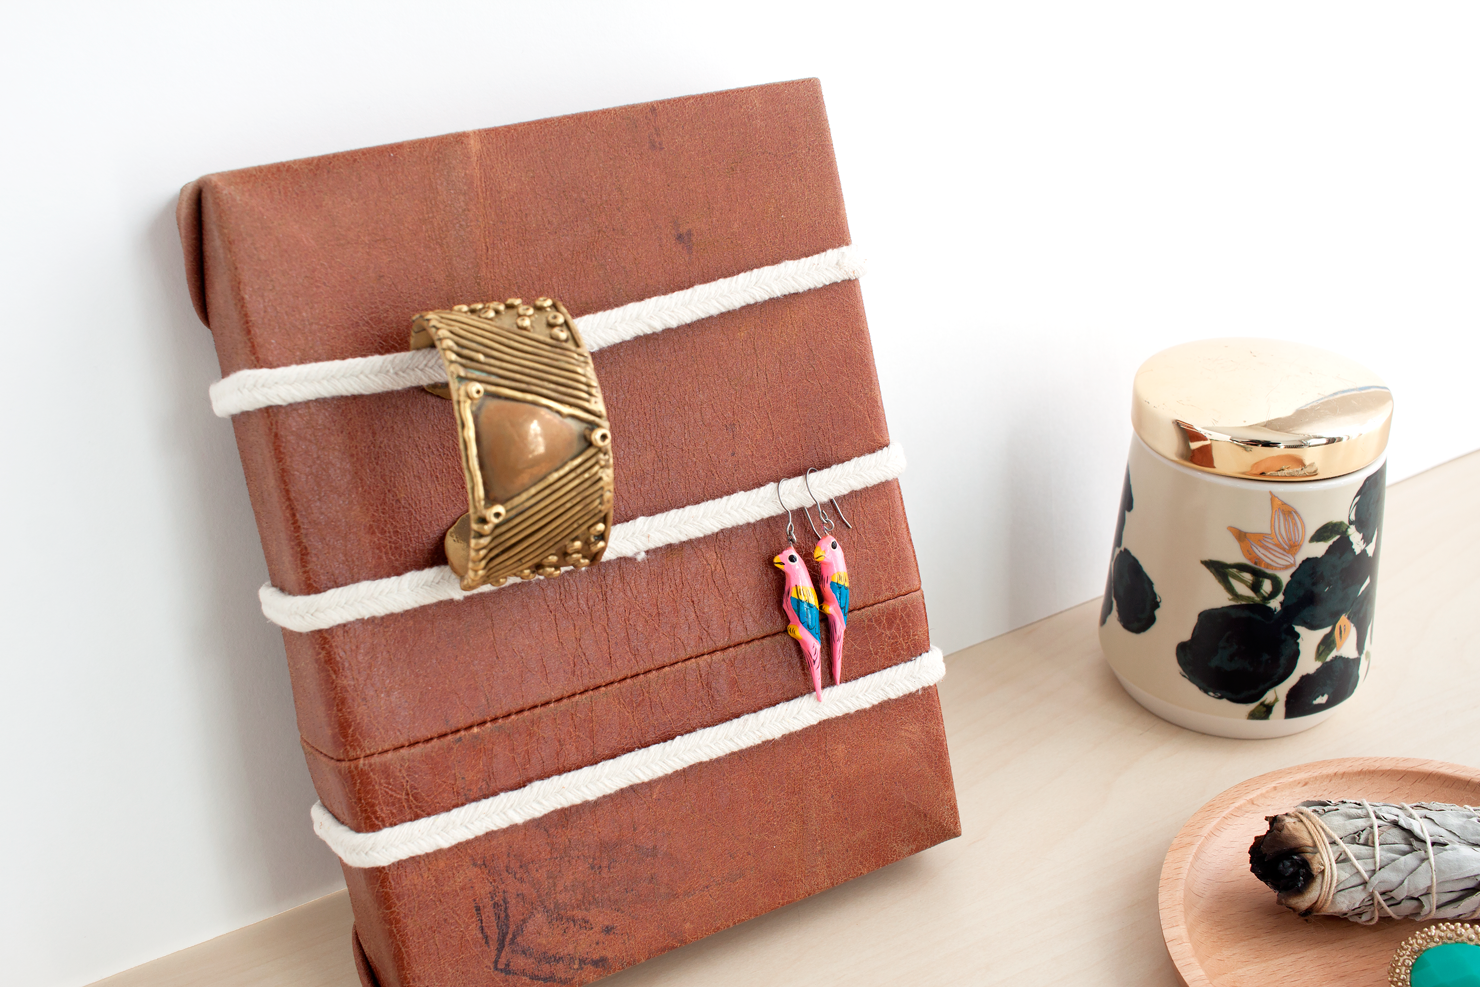 Leather Jewelry Organizer DIY